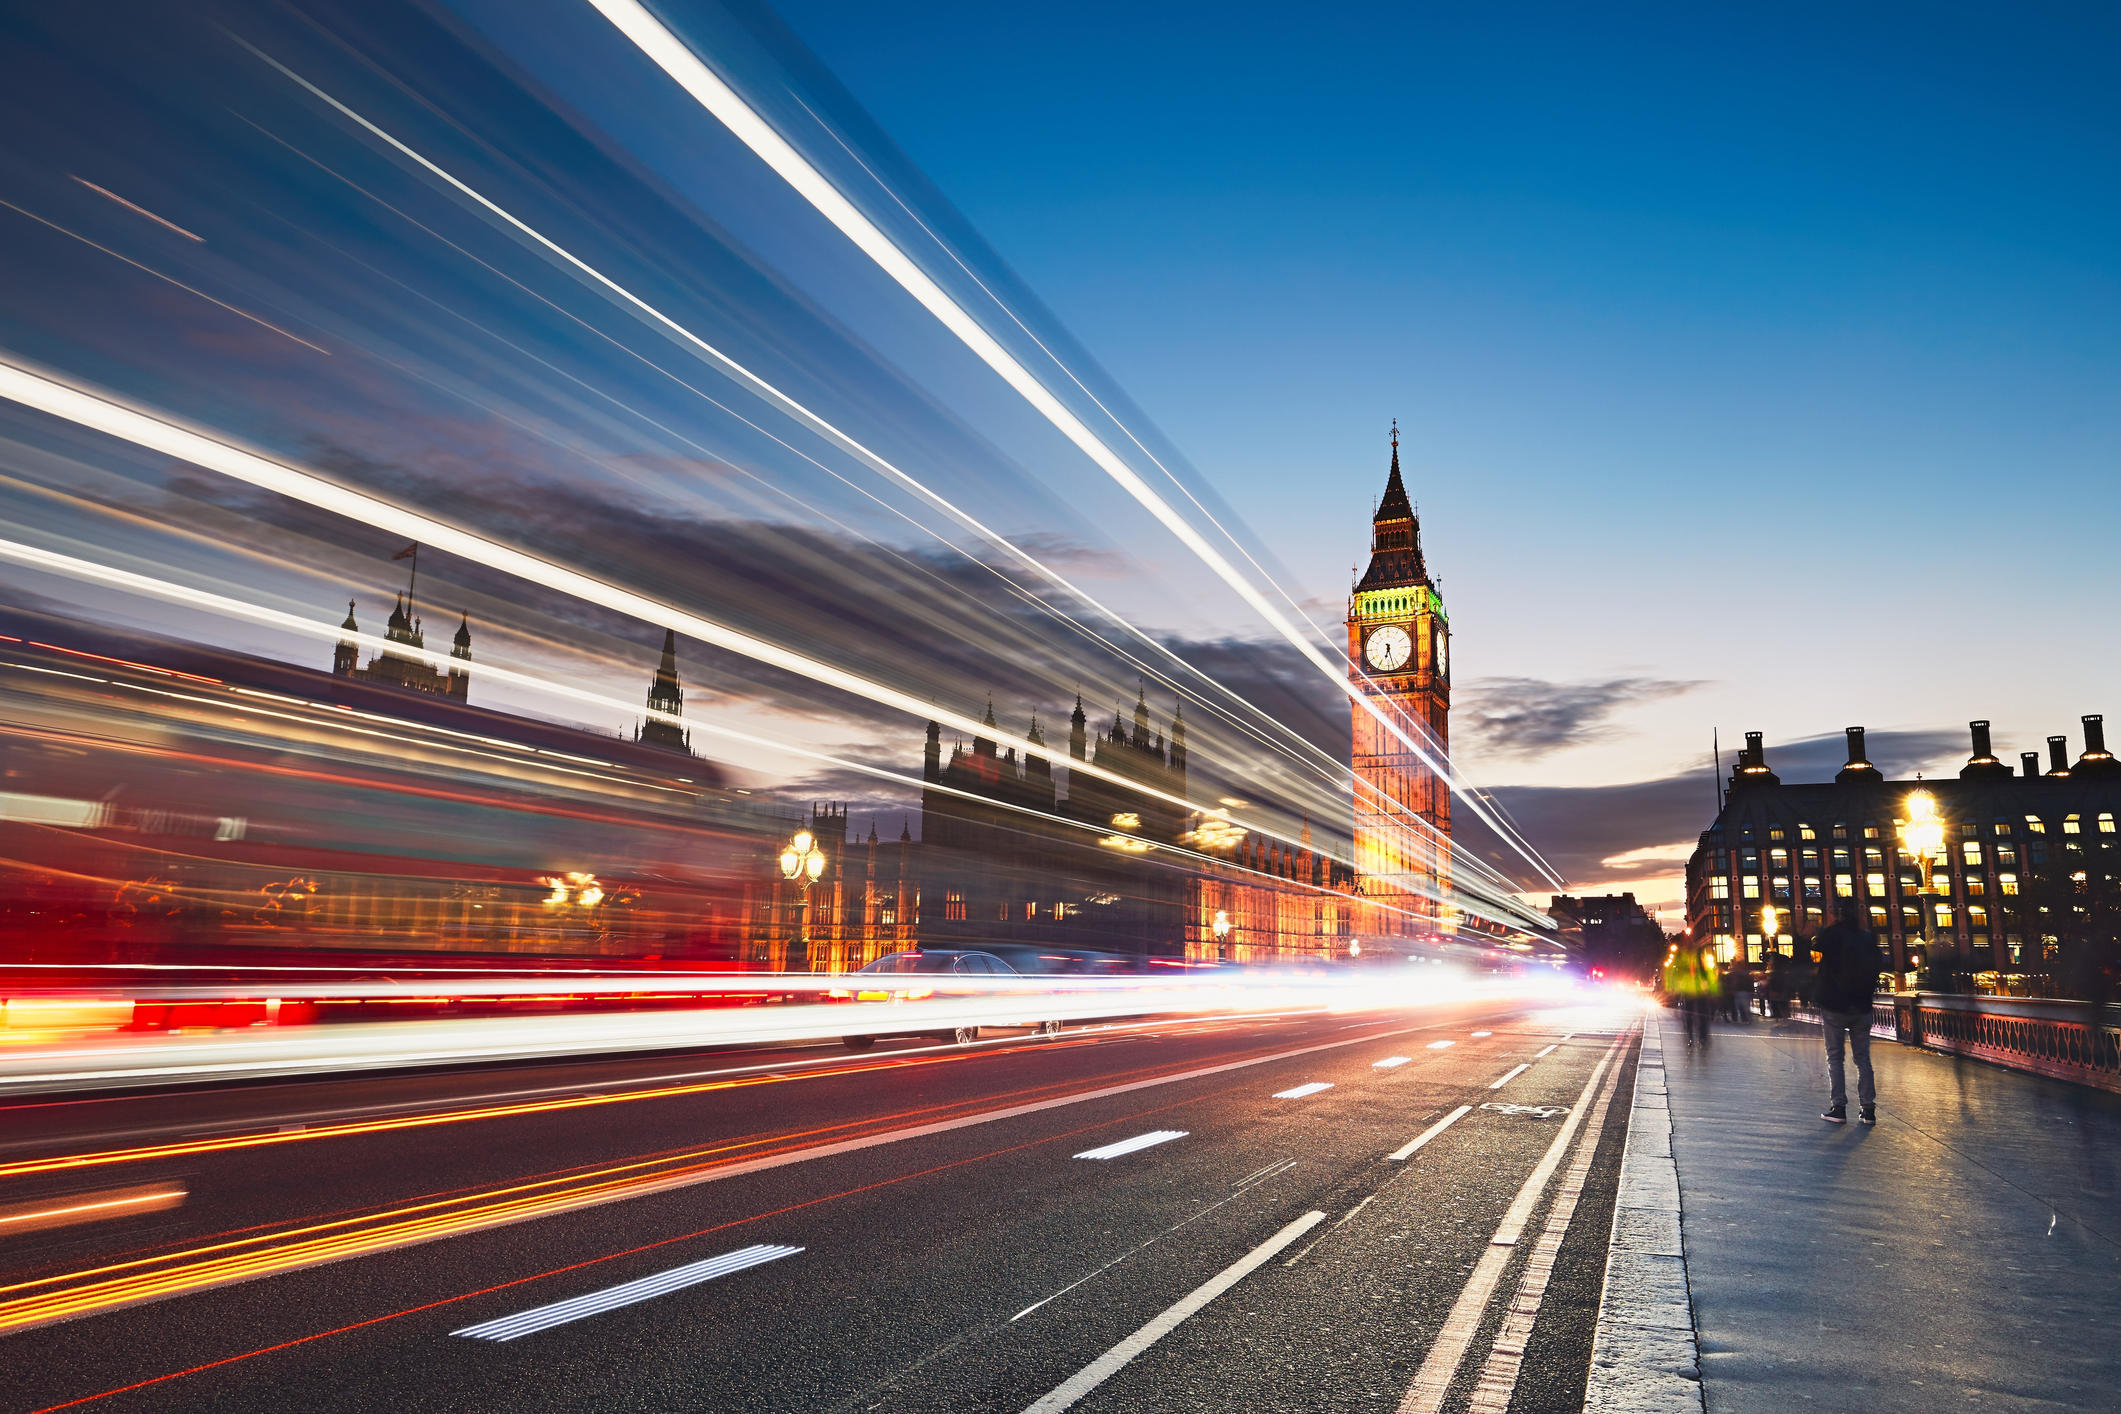 Light Trails On Road In London City At Night